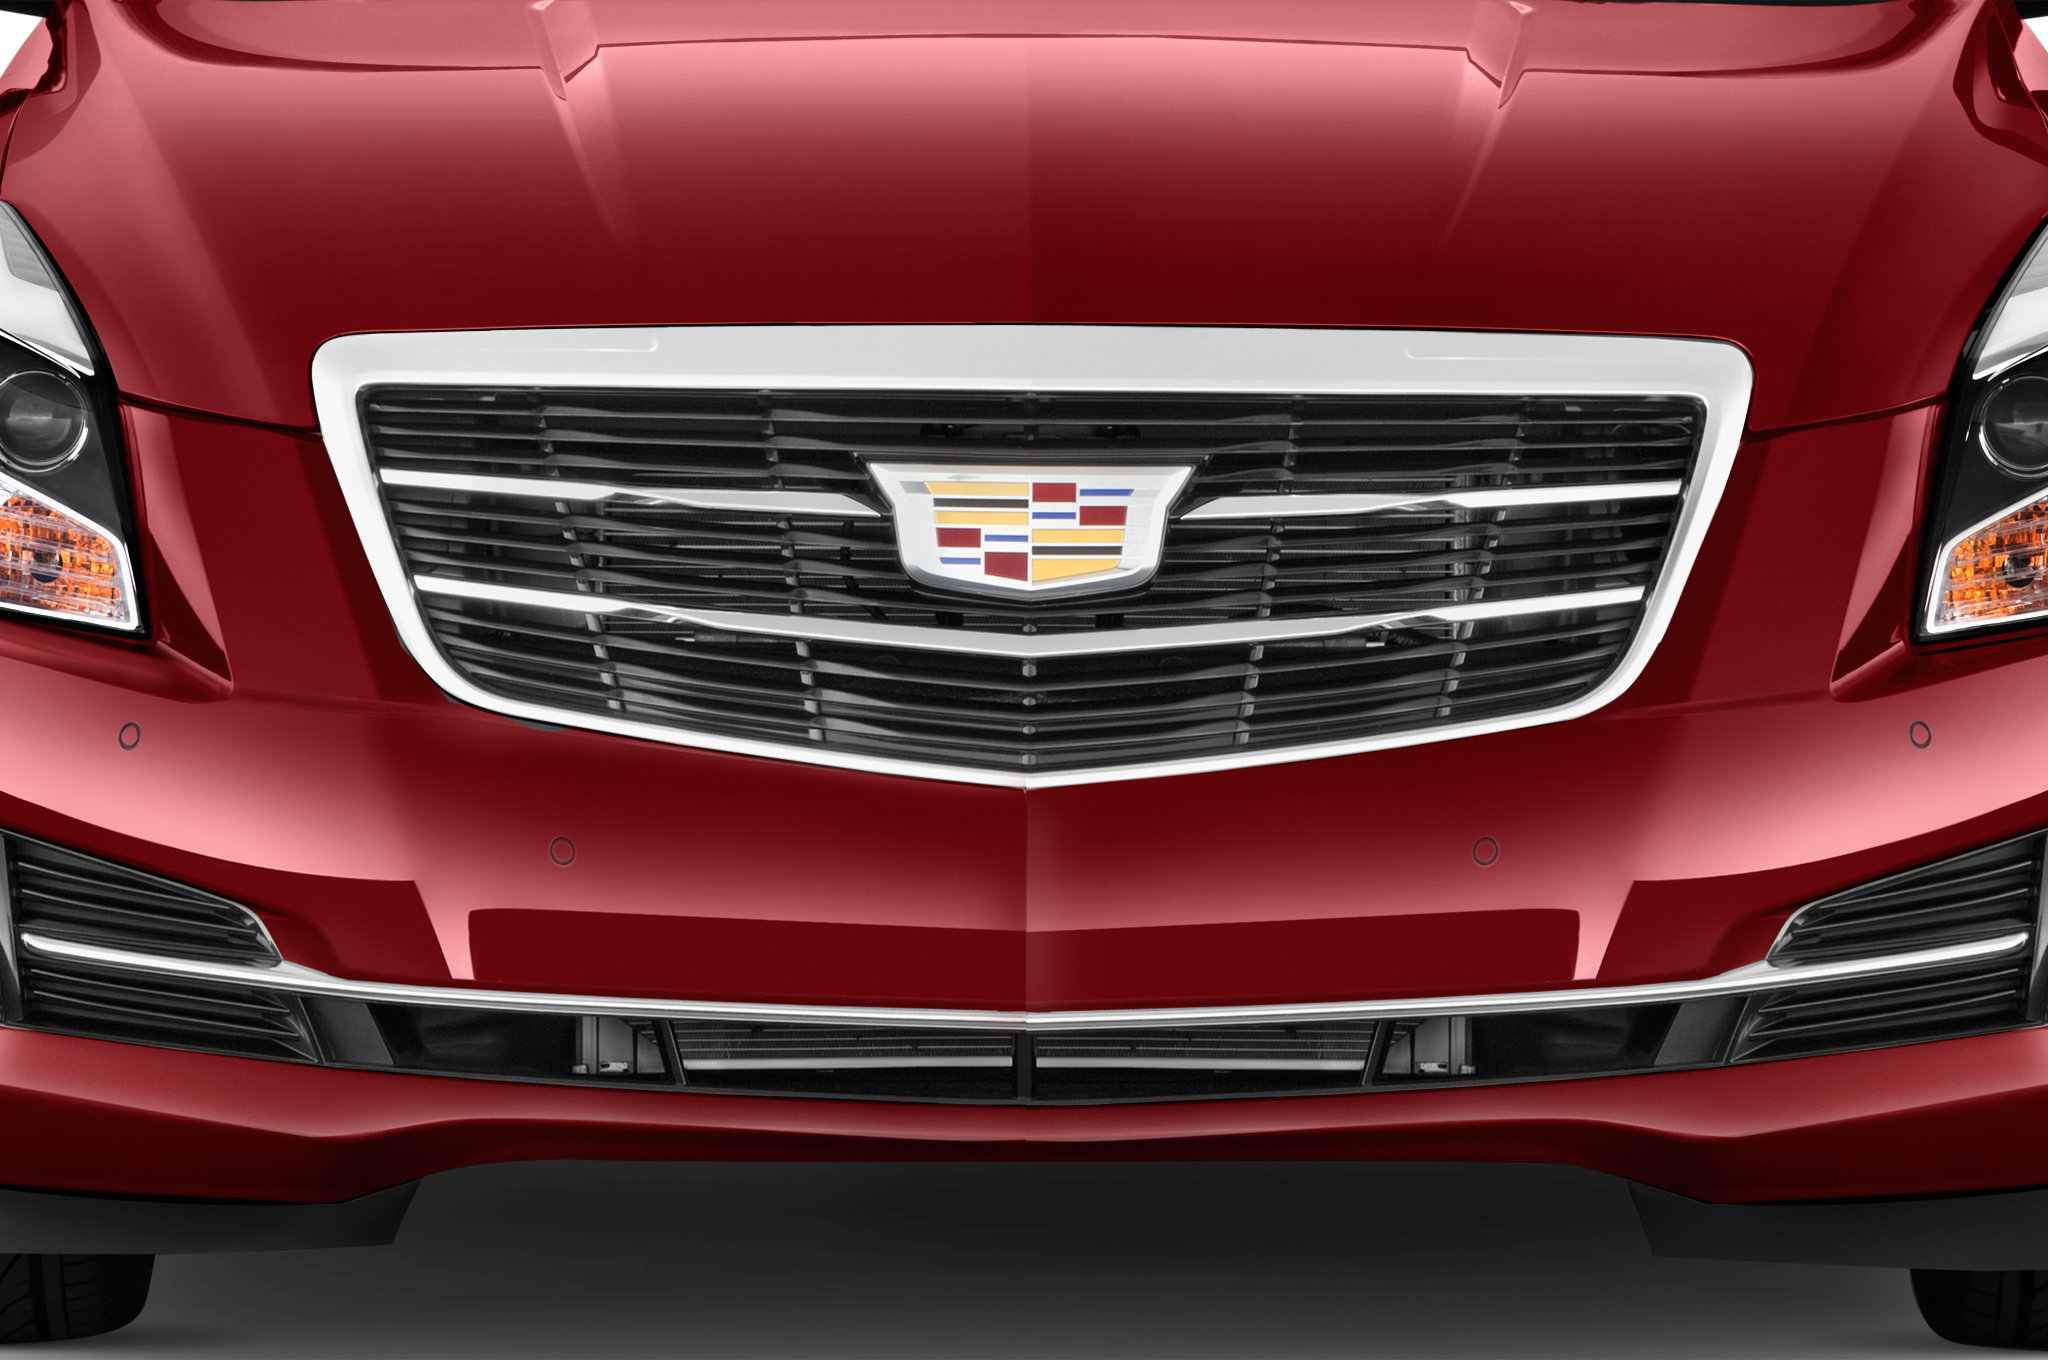 2017 Cadillac ATS 2.0T Quick Take Review | Automobile Magazine